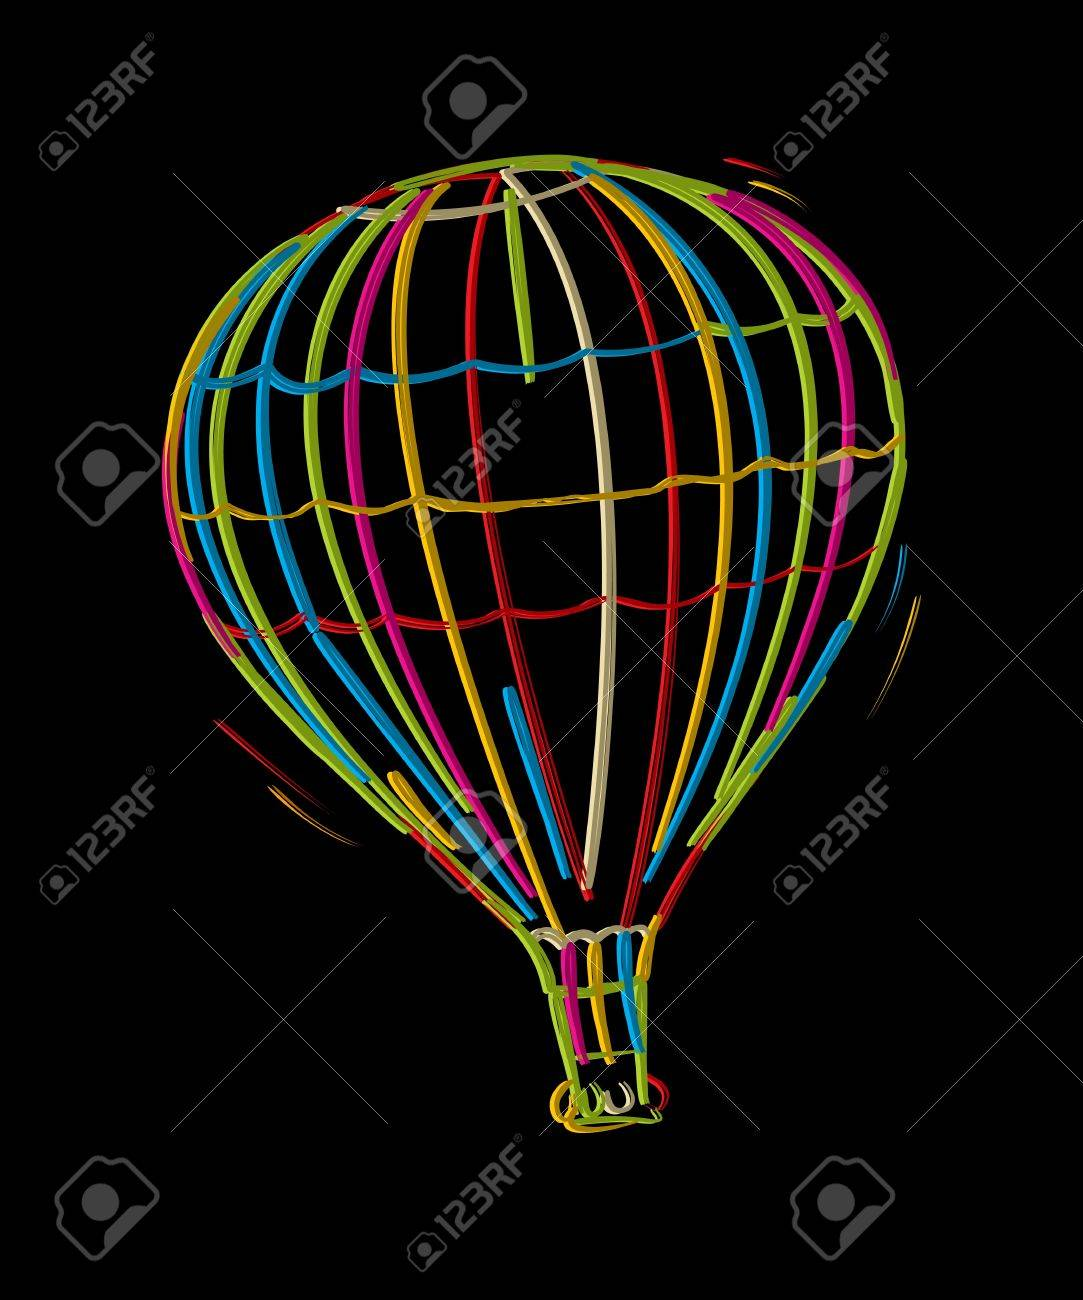 Hot air floating balloon, colored sketch against black background Stock Vector - 17200117